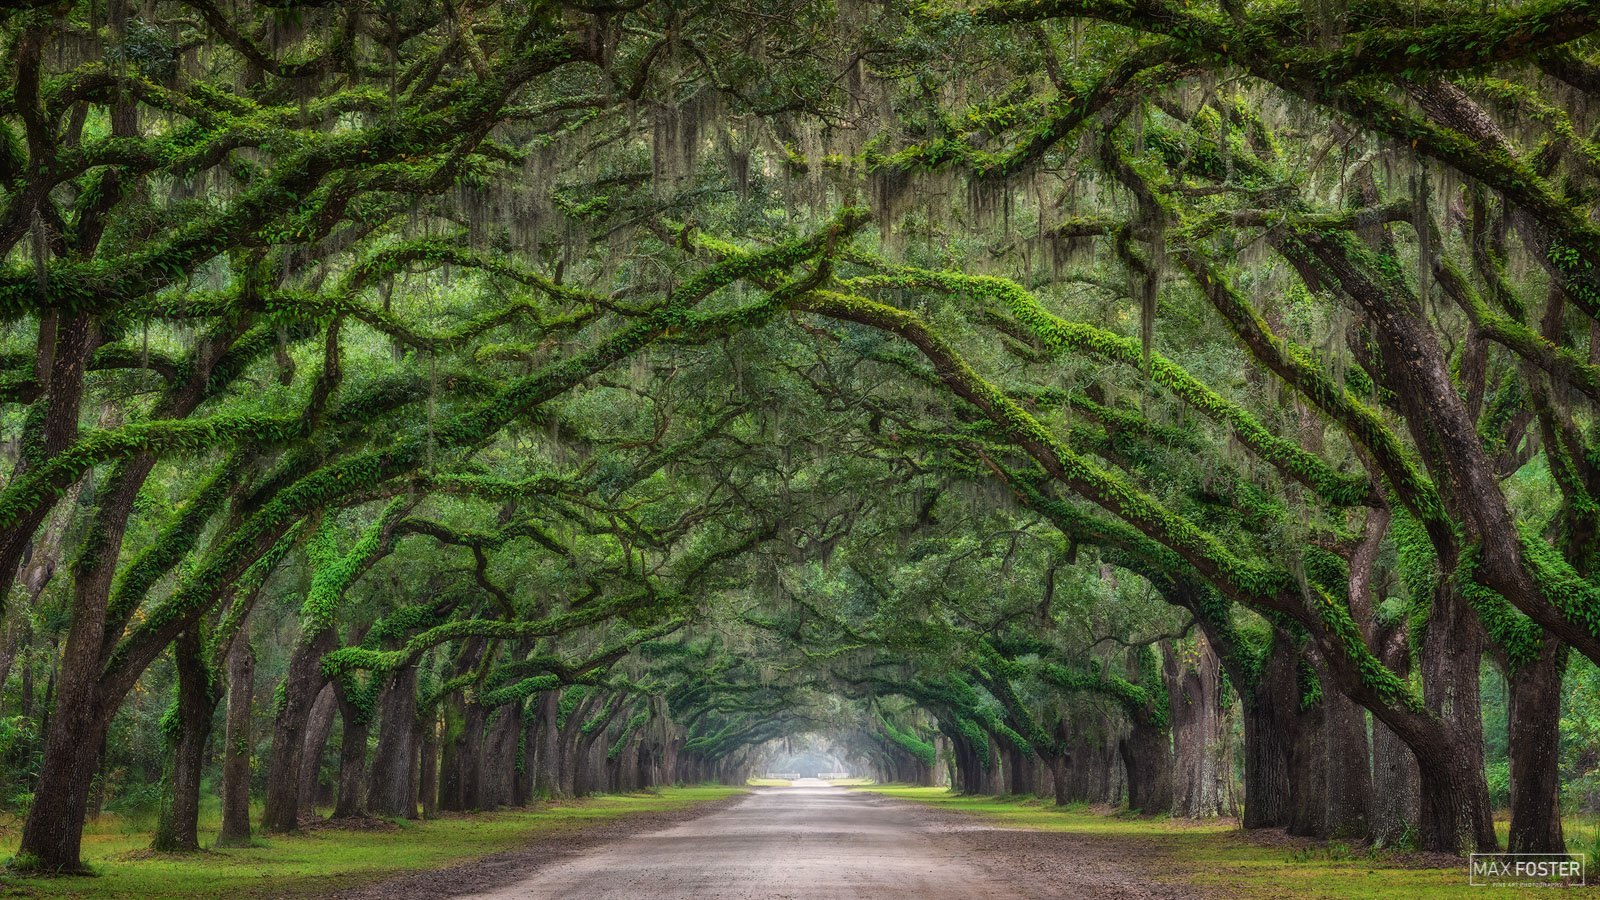 Wormsloe Plantation, Savannah, Georgia, Tunnel Vision, Tree Tunnel, Canopy, photo